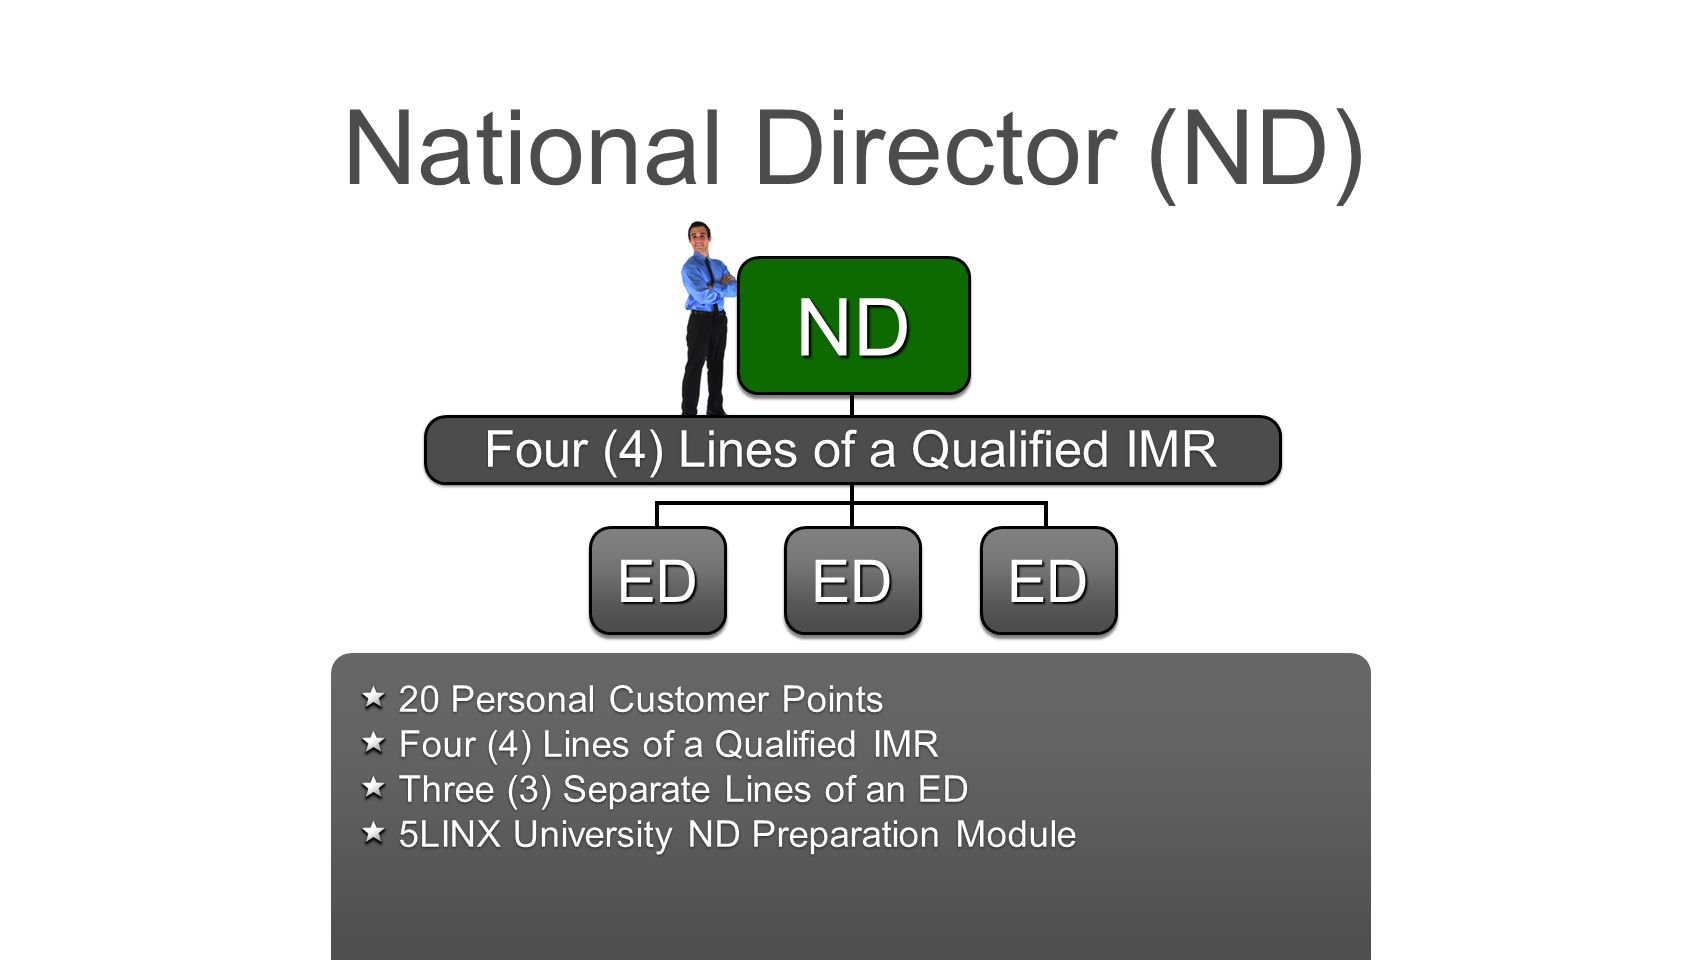 National Director (ND)